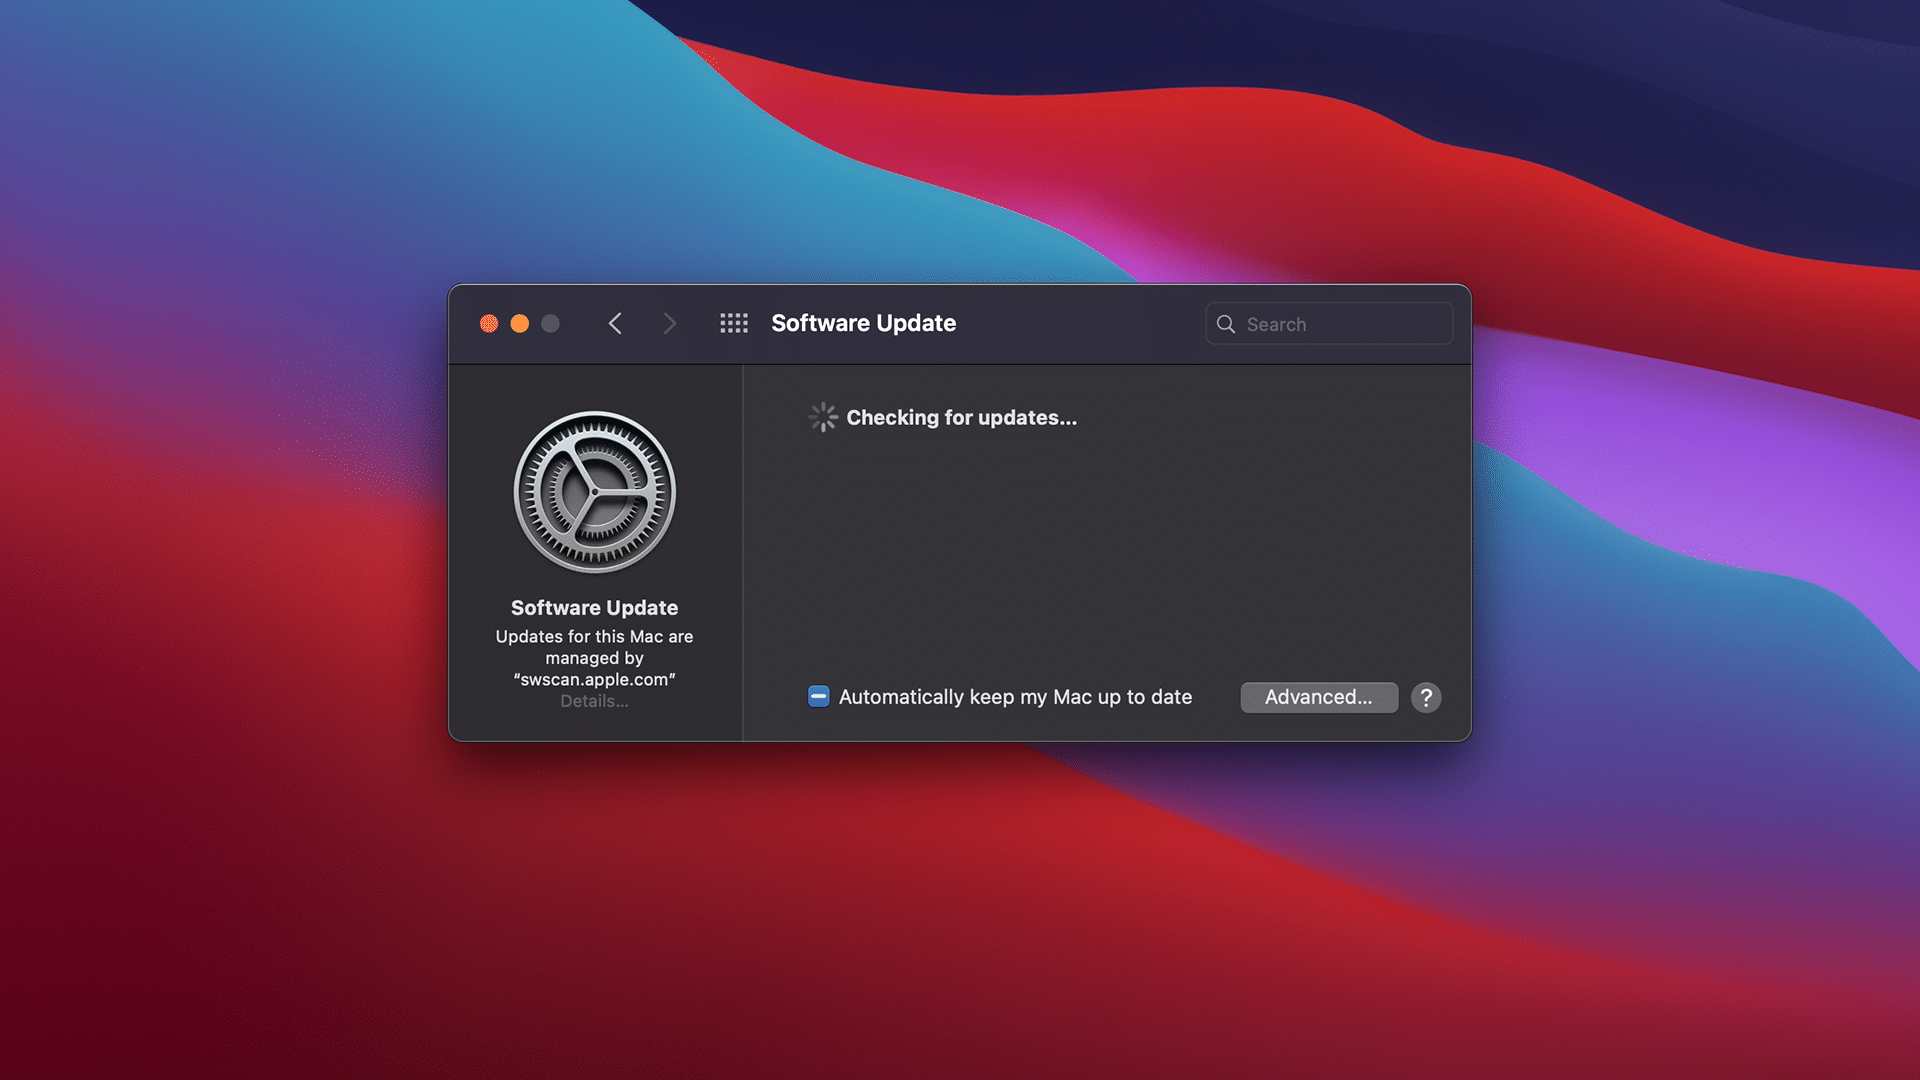 How to Update to macOS Big Sur without Losing Data